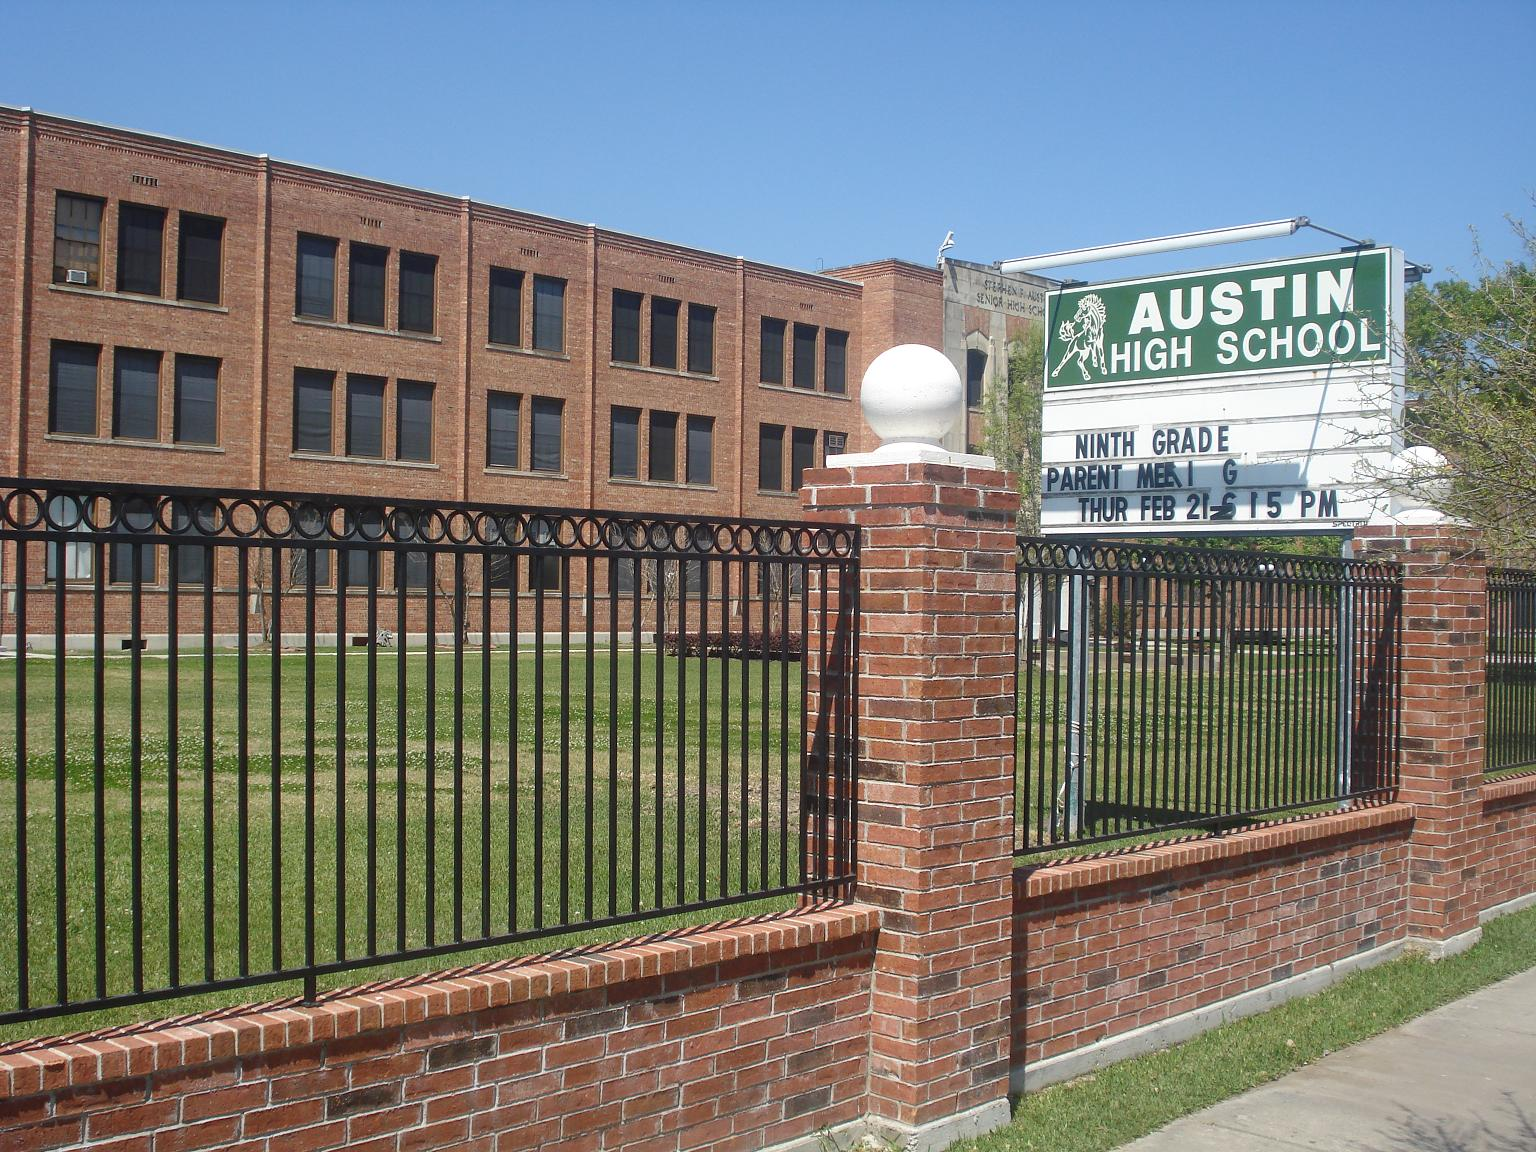 HISD To Consider Construction Contract For New Austin High School